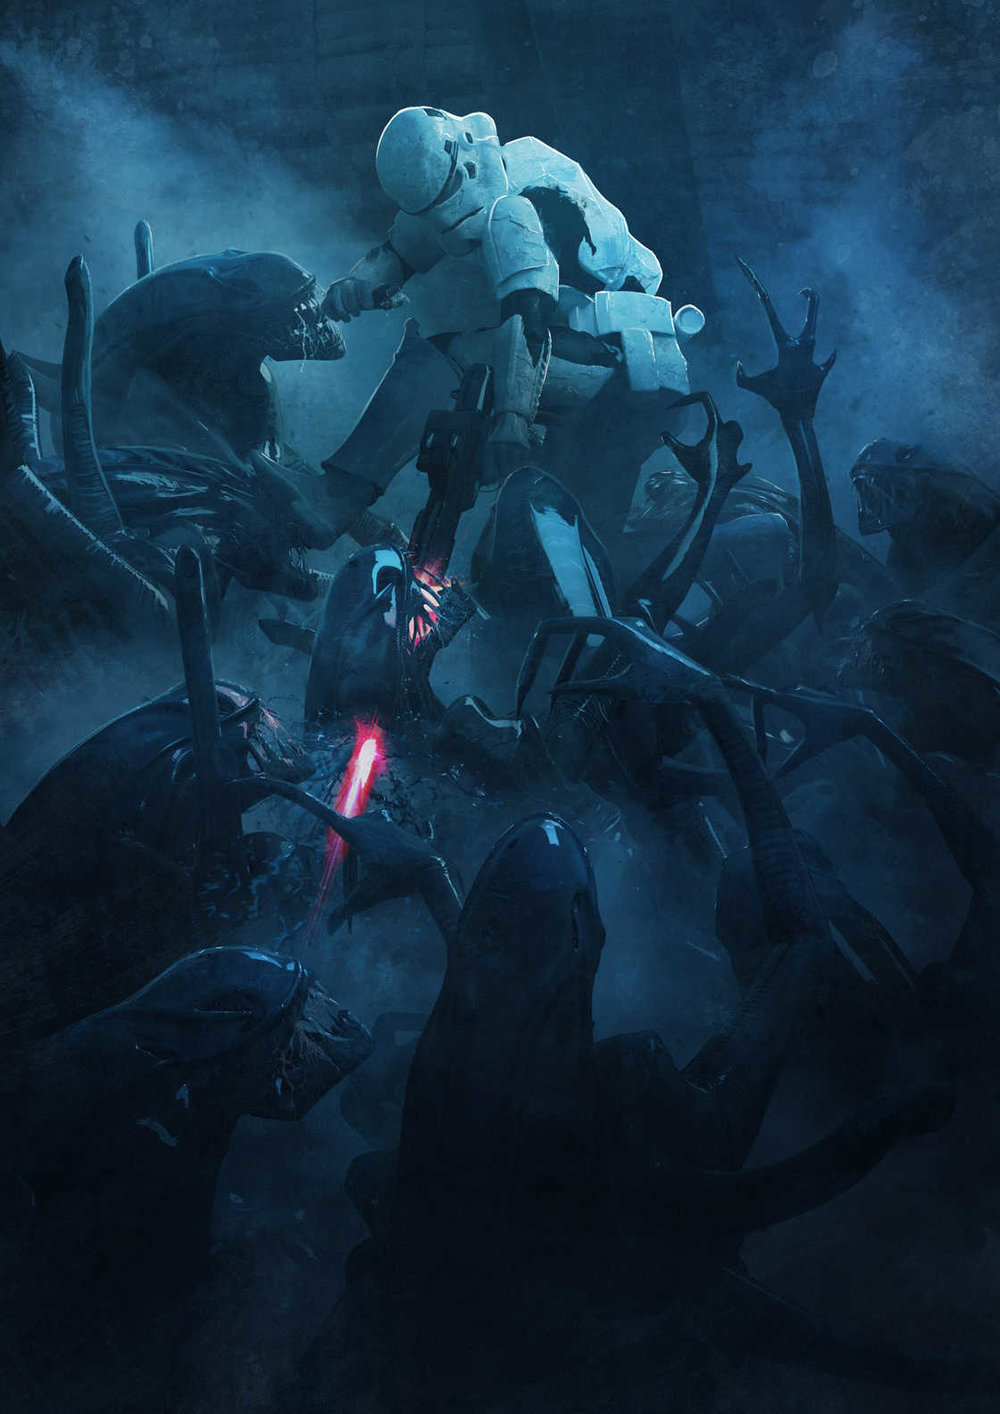 Guillem-H-Pongiluppi-star-wars-vs-aliens-6.jpg